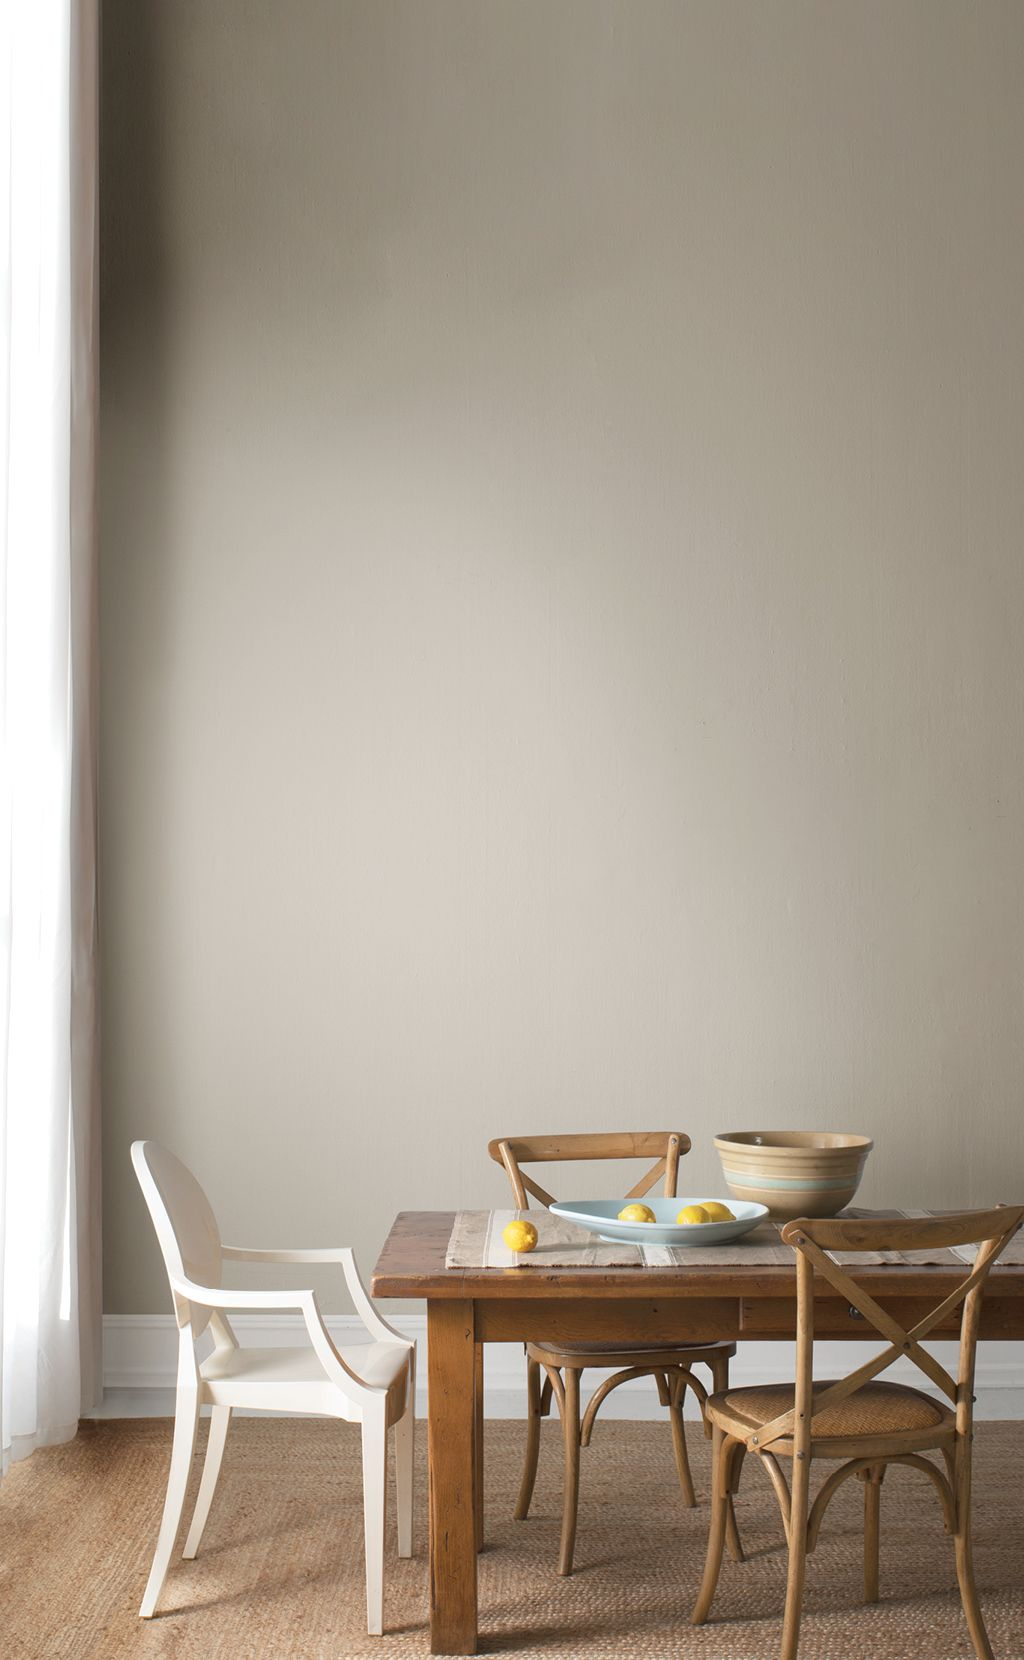 paints exterior stains with images benjamin moore on behr exterior house paint simulator id=94275